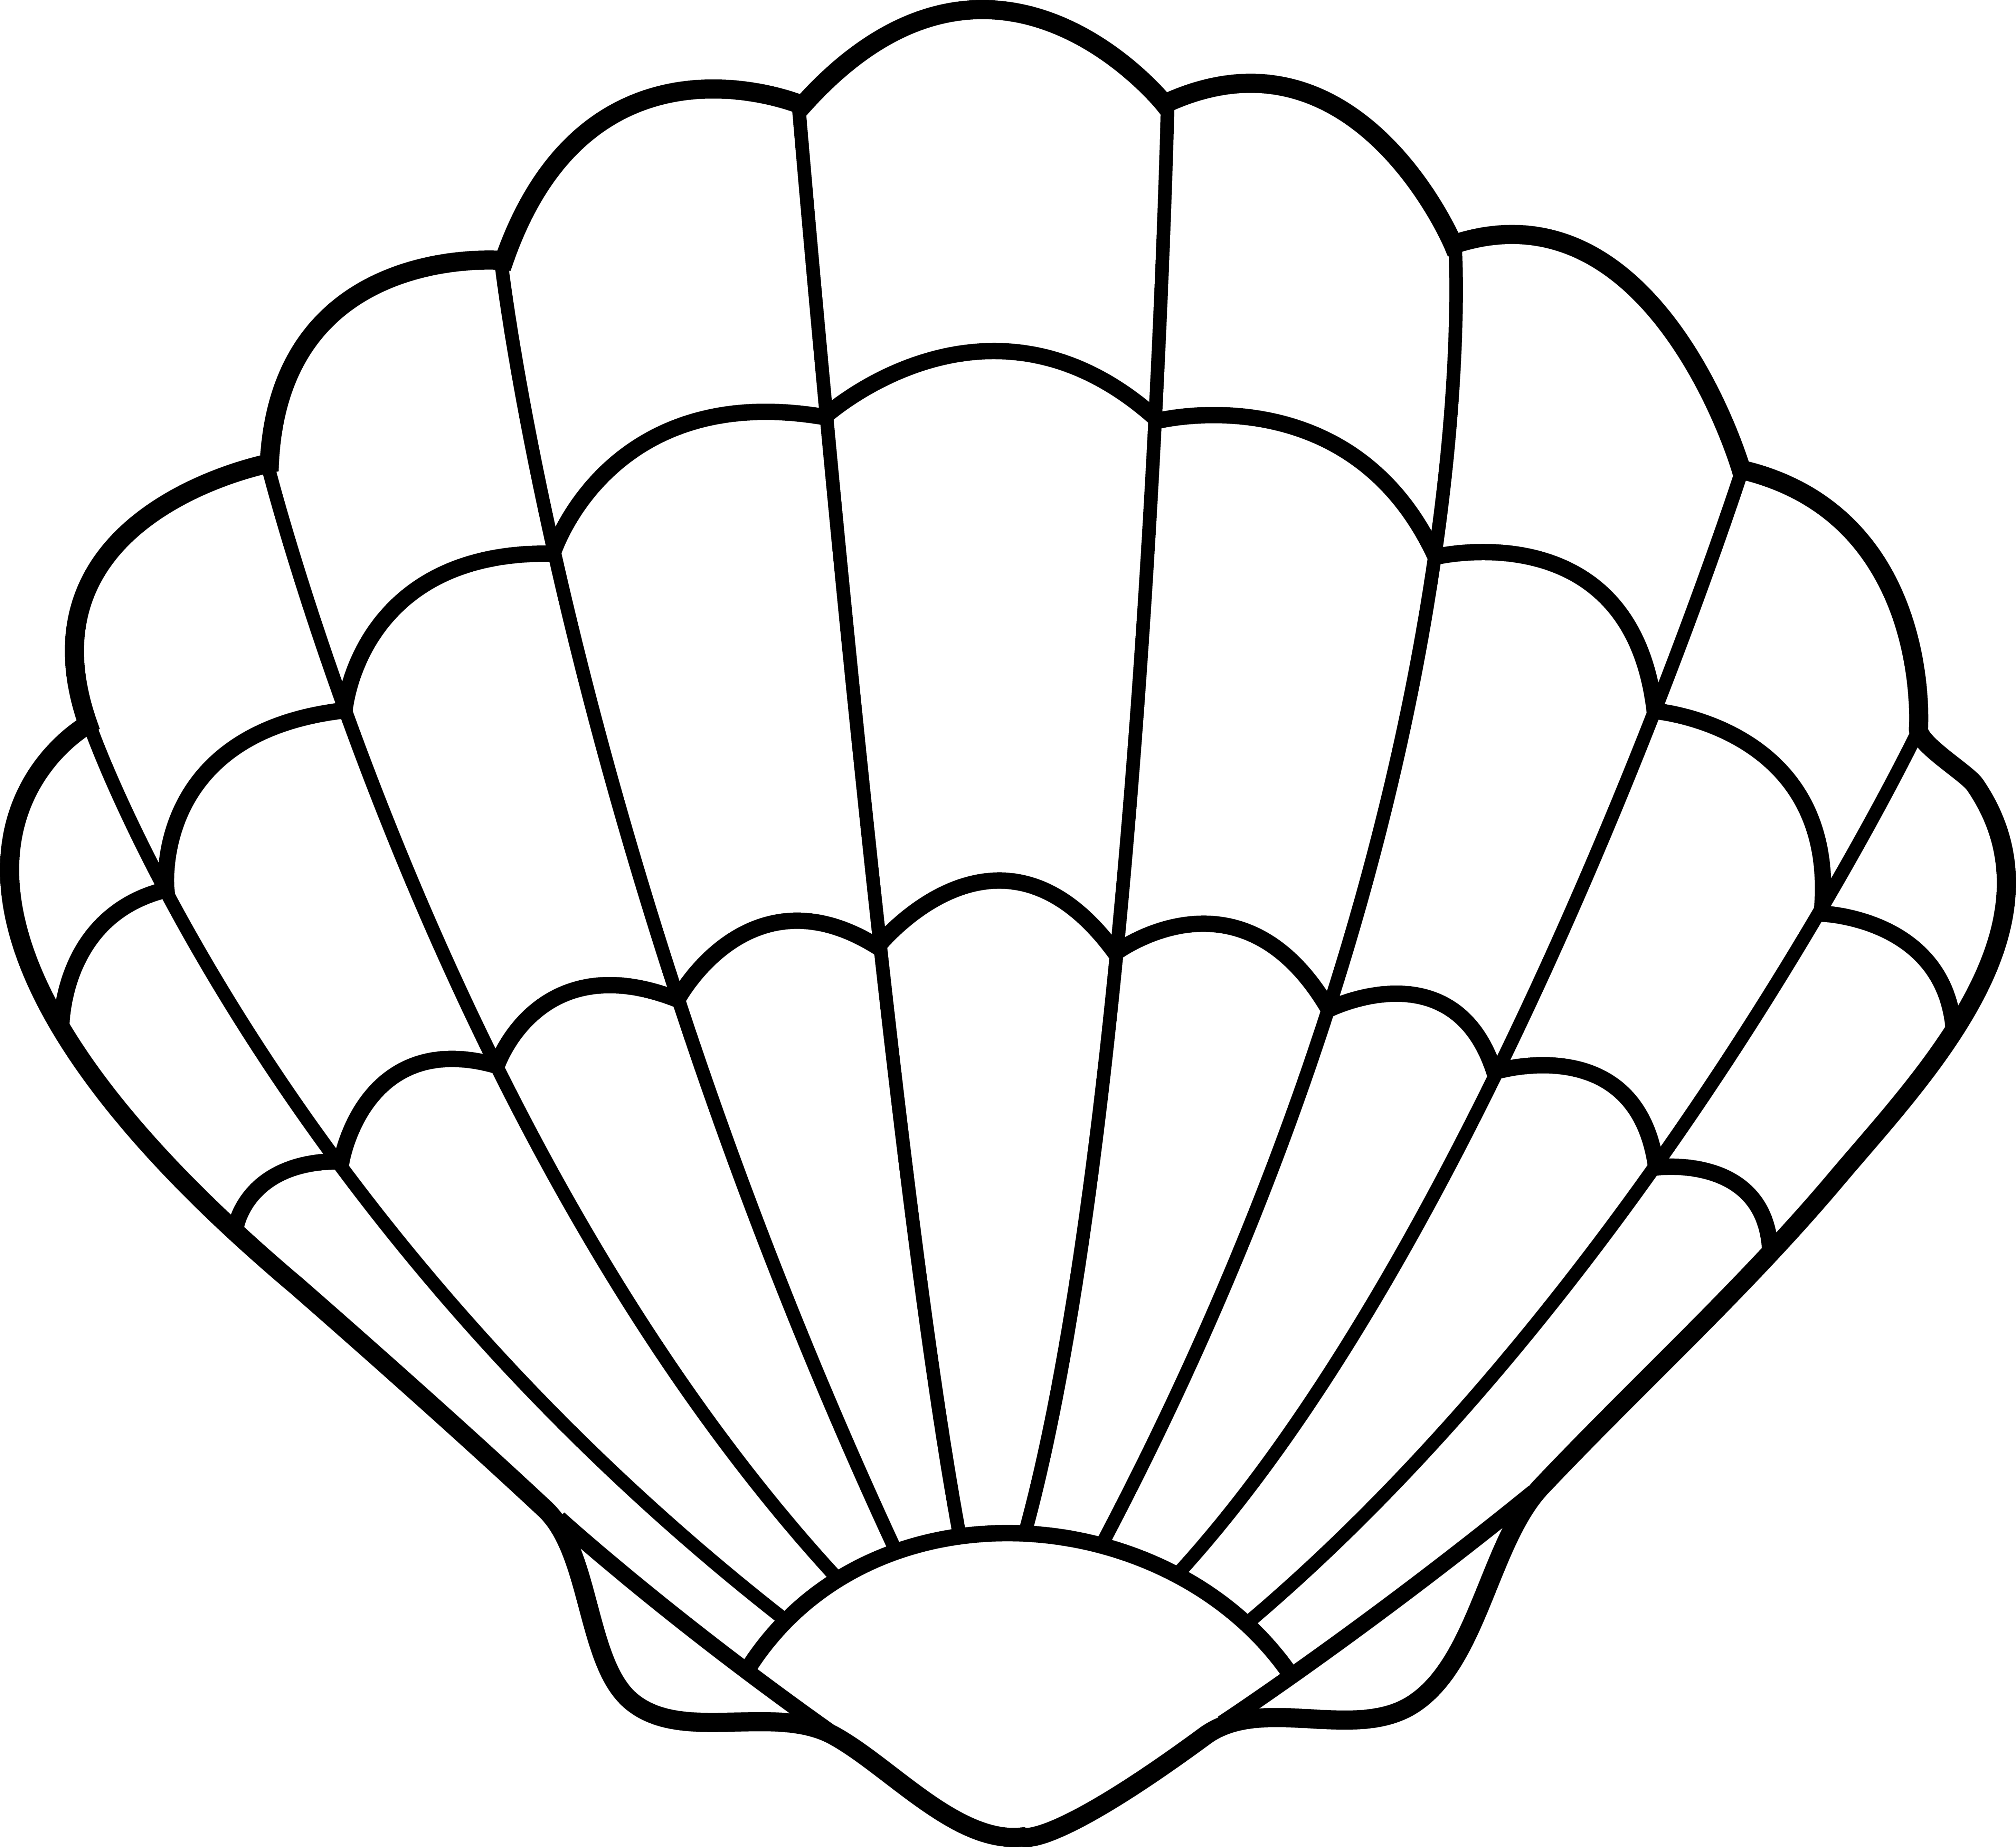 Conch shell clipart free png black and white download Shell Outline   Free download best Shell Outline on ClipArtMag.com png black and white download